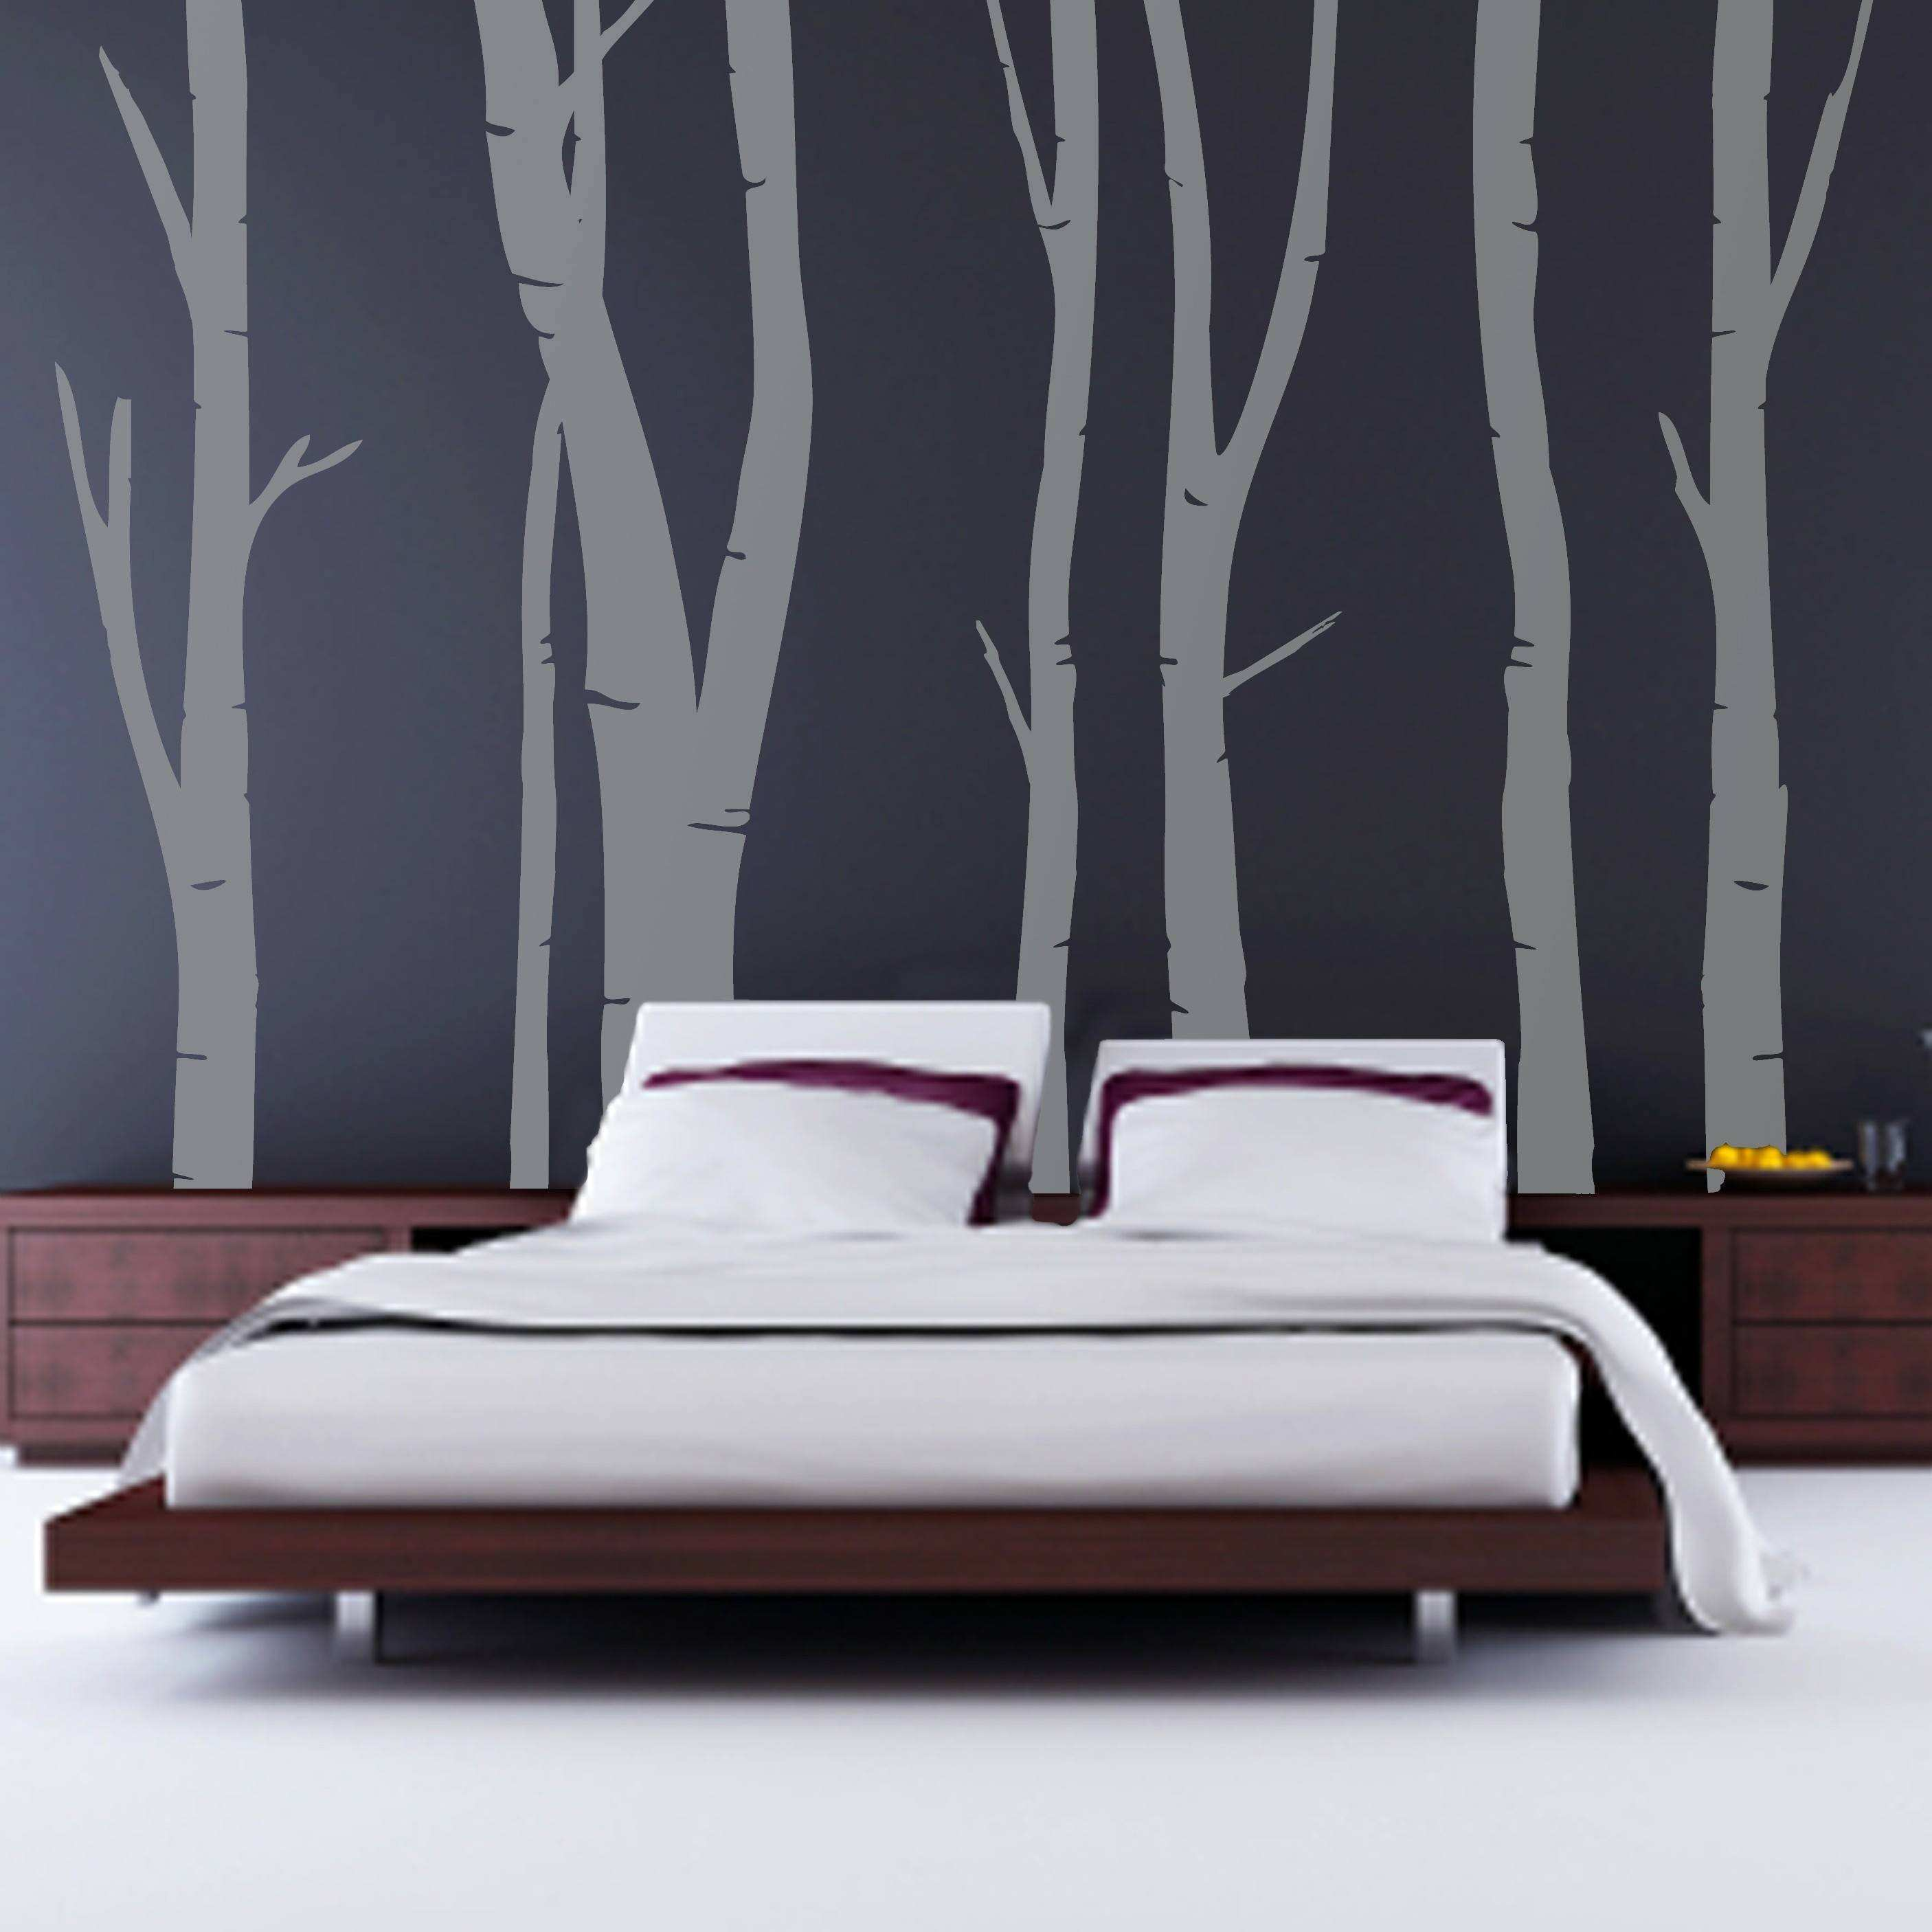 41 Awesome Blue Wall Art for Bedroom